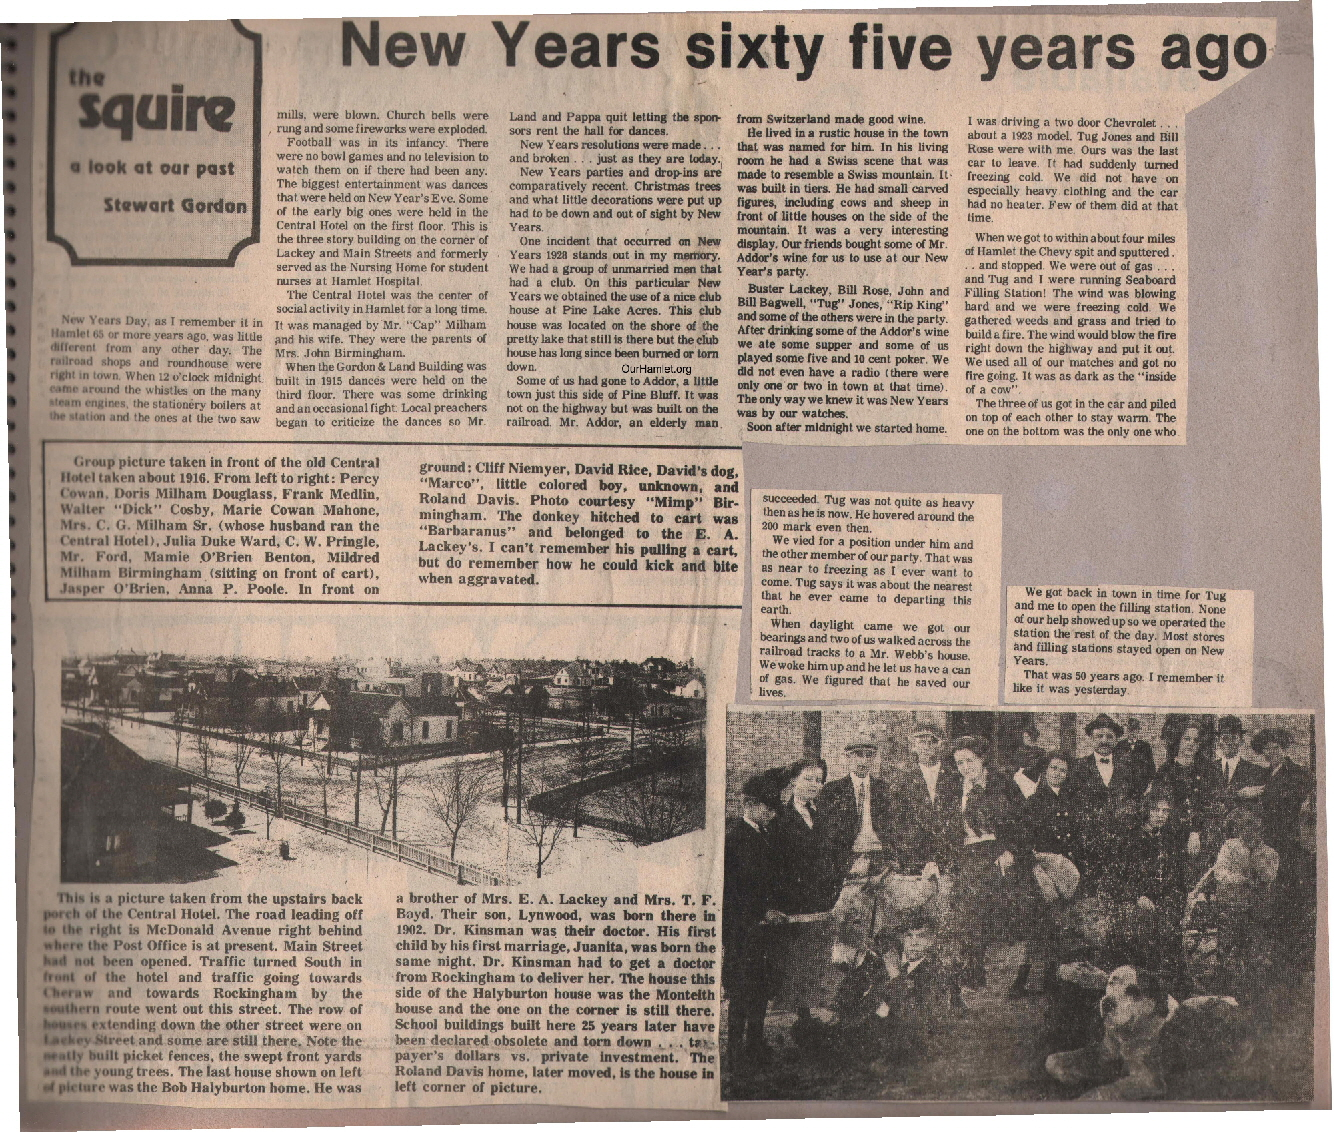 The Squire - New Years sixty five years ago OH